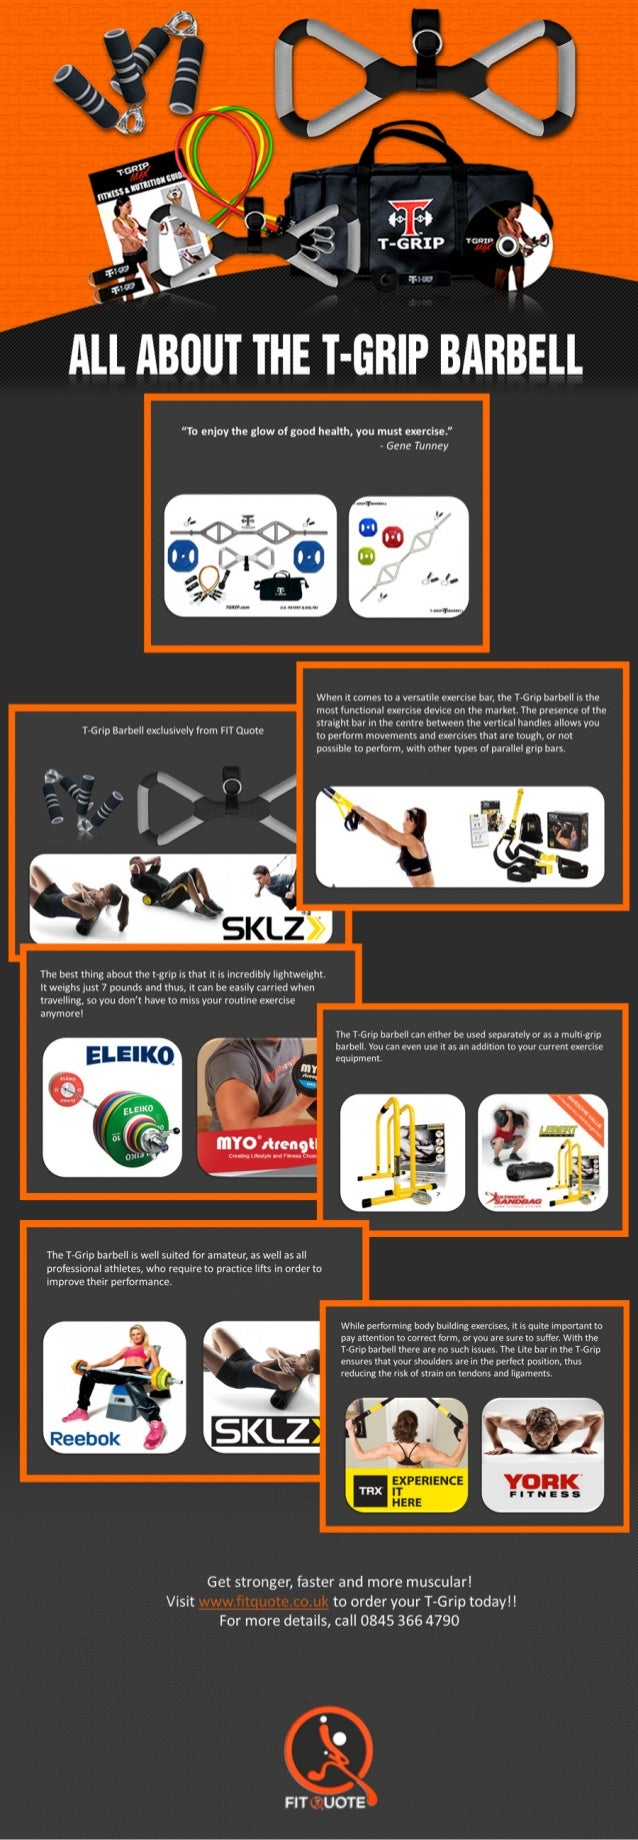 T-Grip - Know the Features and Advantages